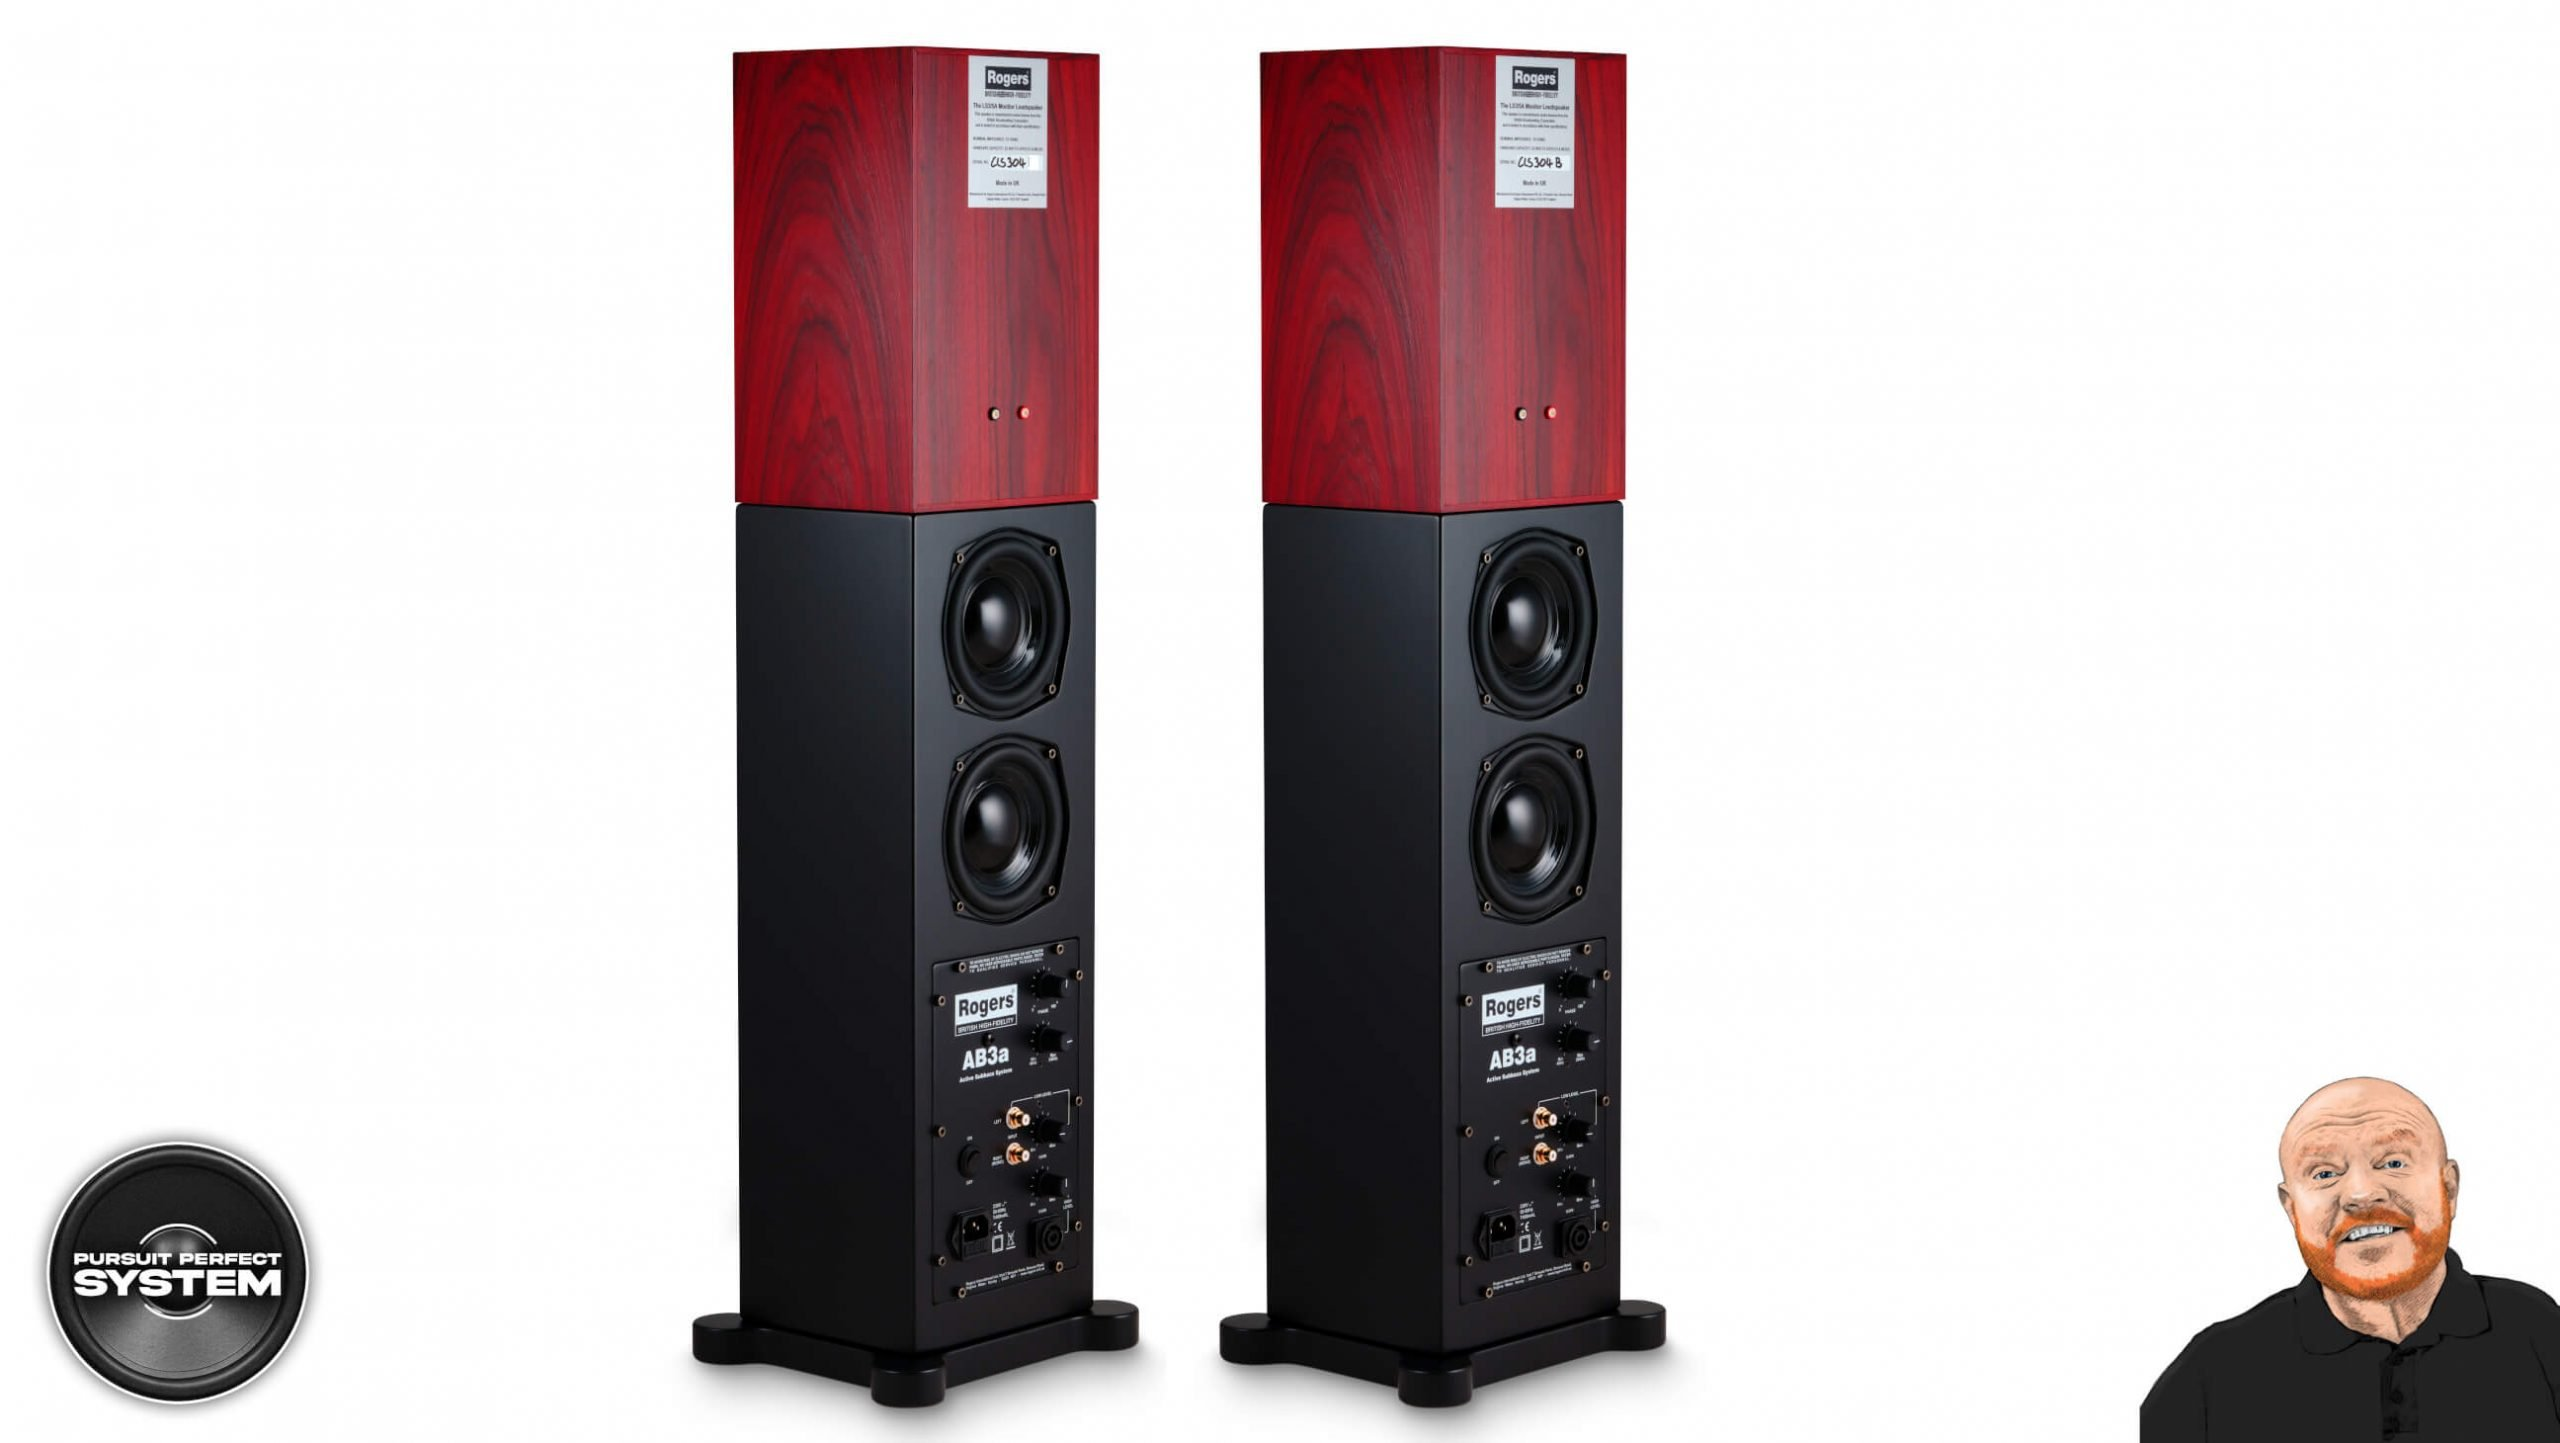 Rogers NEW Active Bass for LS3 5A AB3a subwoofer system website 2